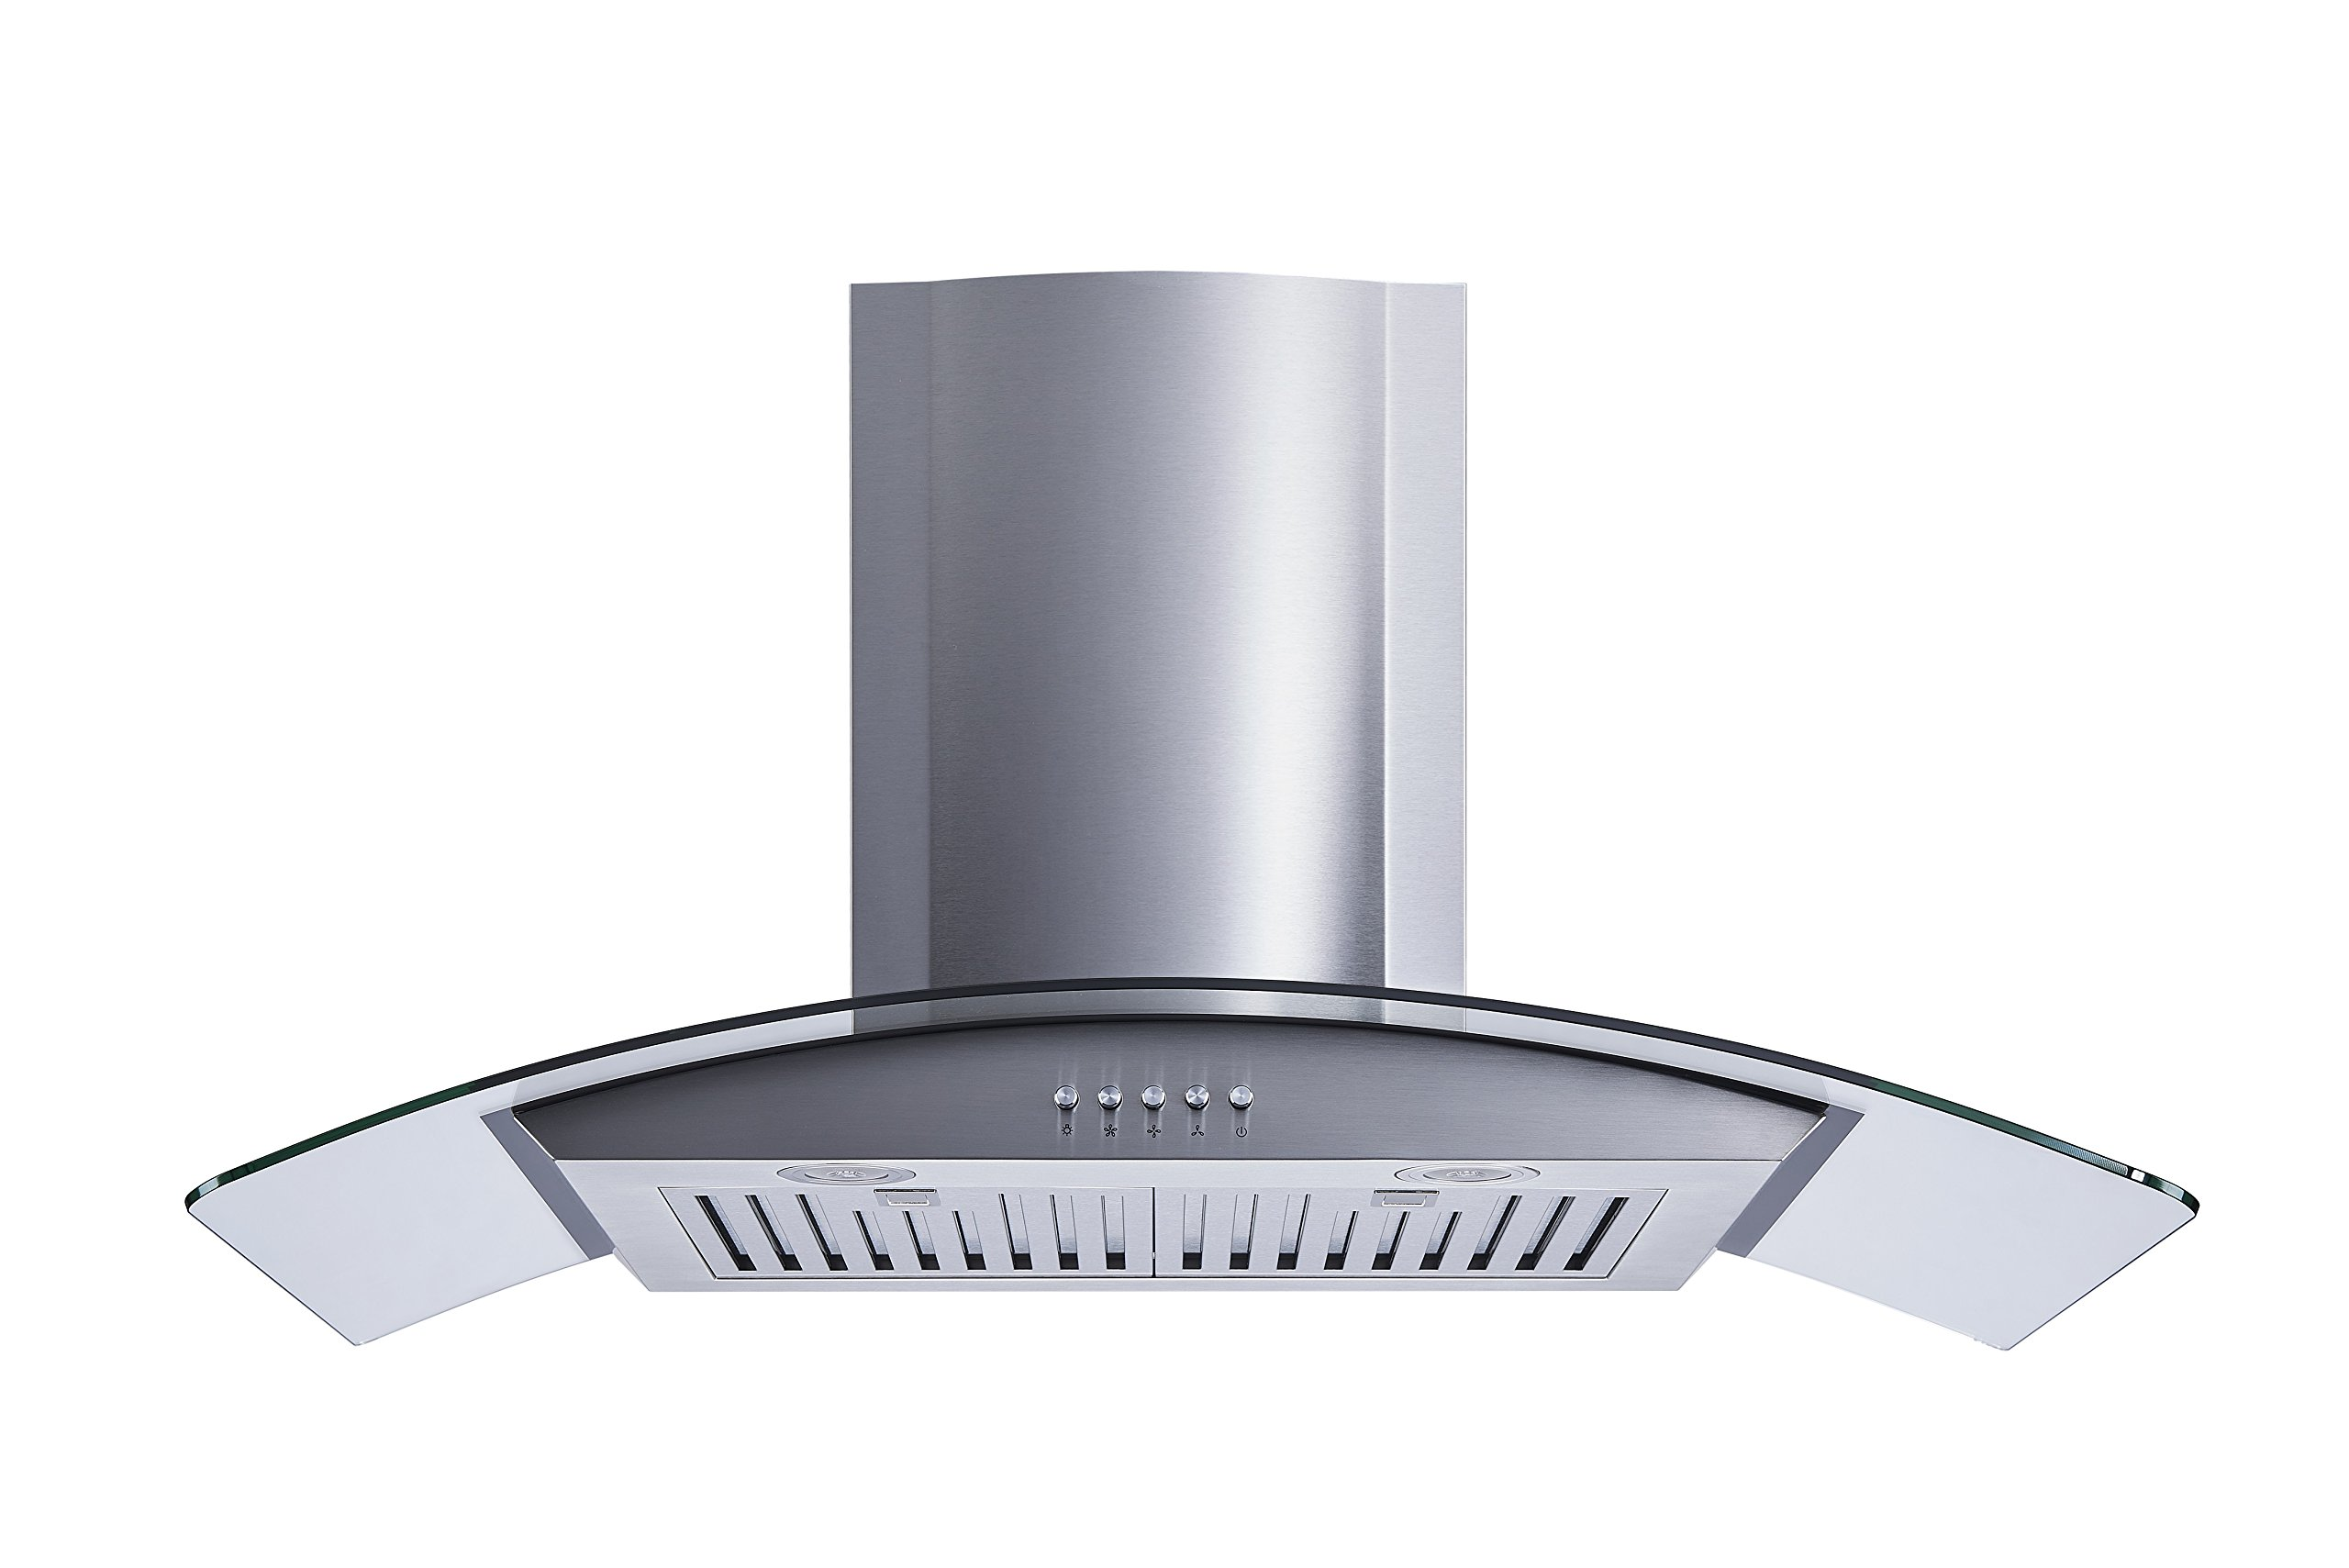 Winflo New 36'' Convertible Stainless Steel/Tempered Glass Wall Mount Range Hood with Stainless Steel Baffle filters, Ultra bright LED lights and Push Button 3 Speed Control